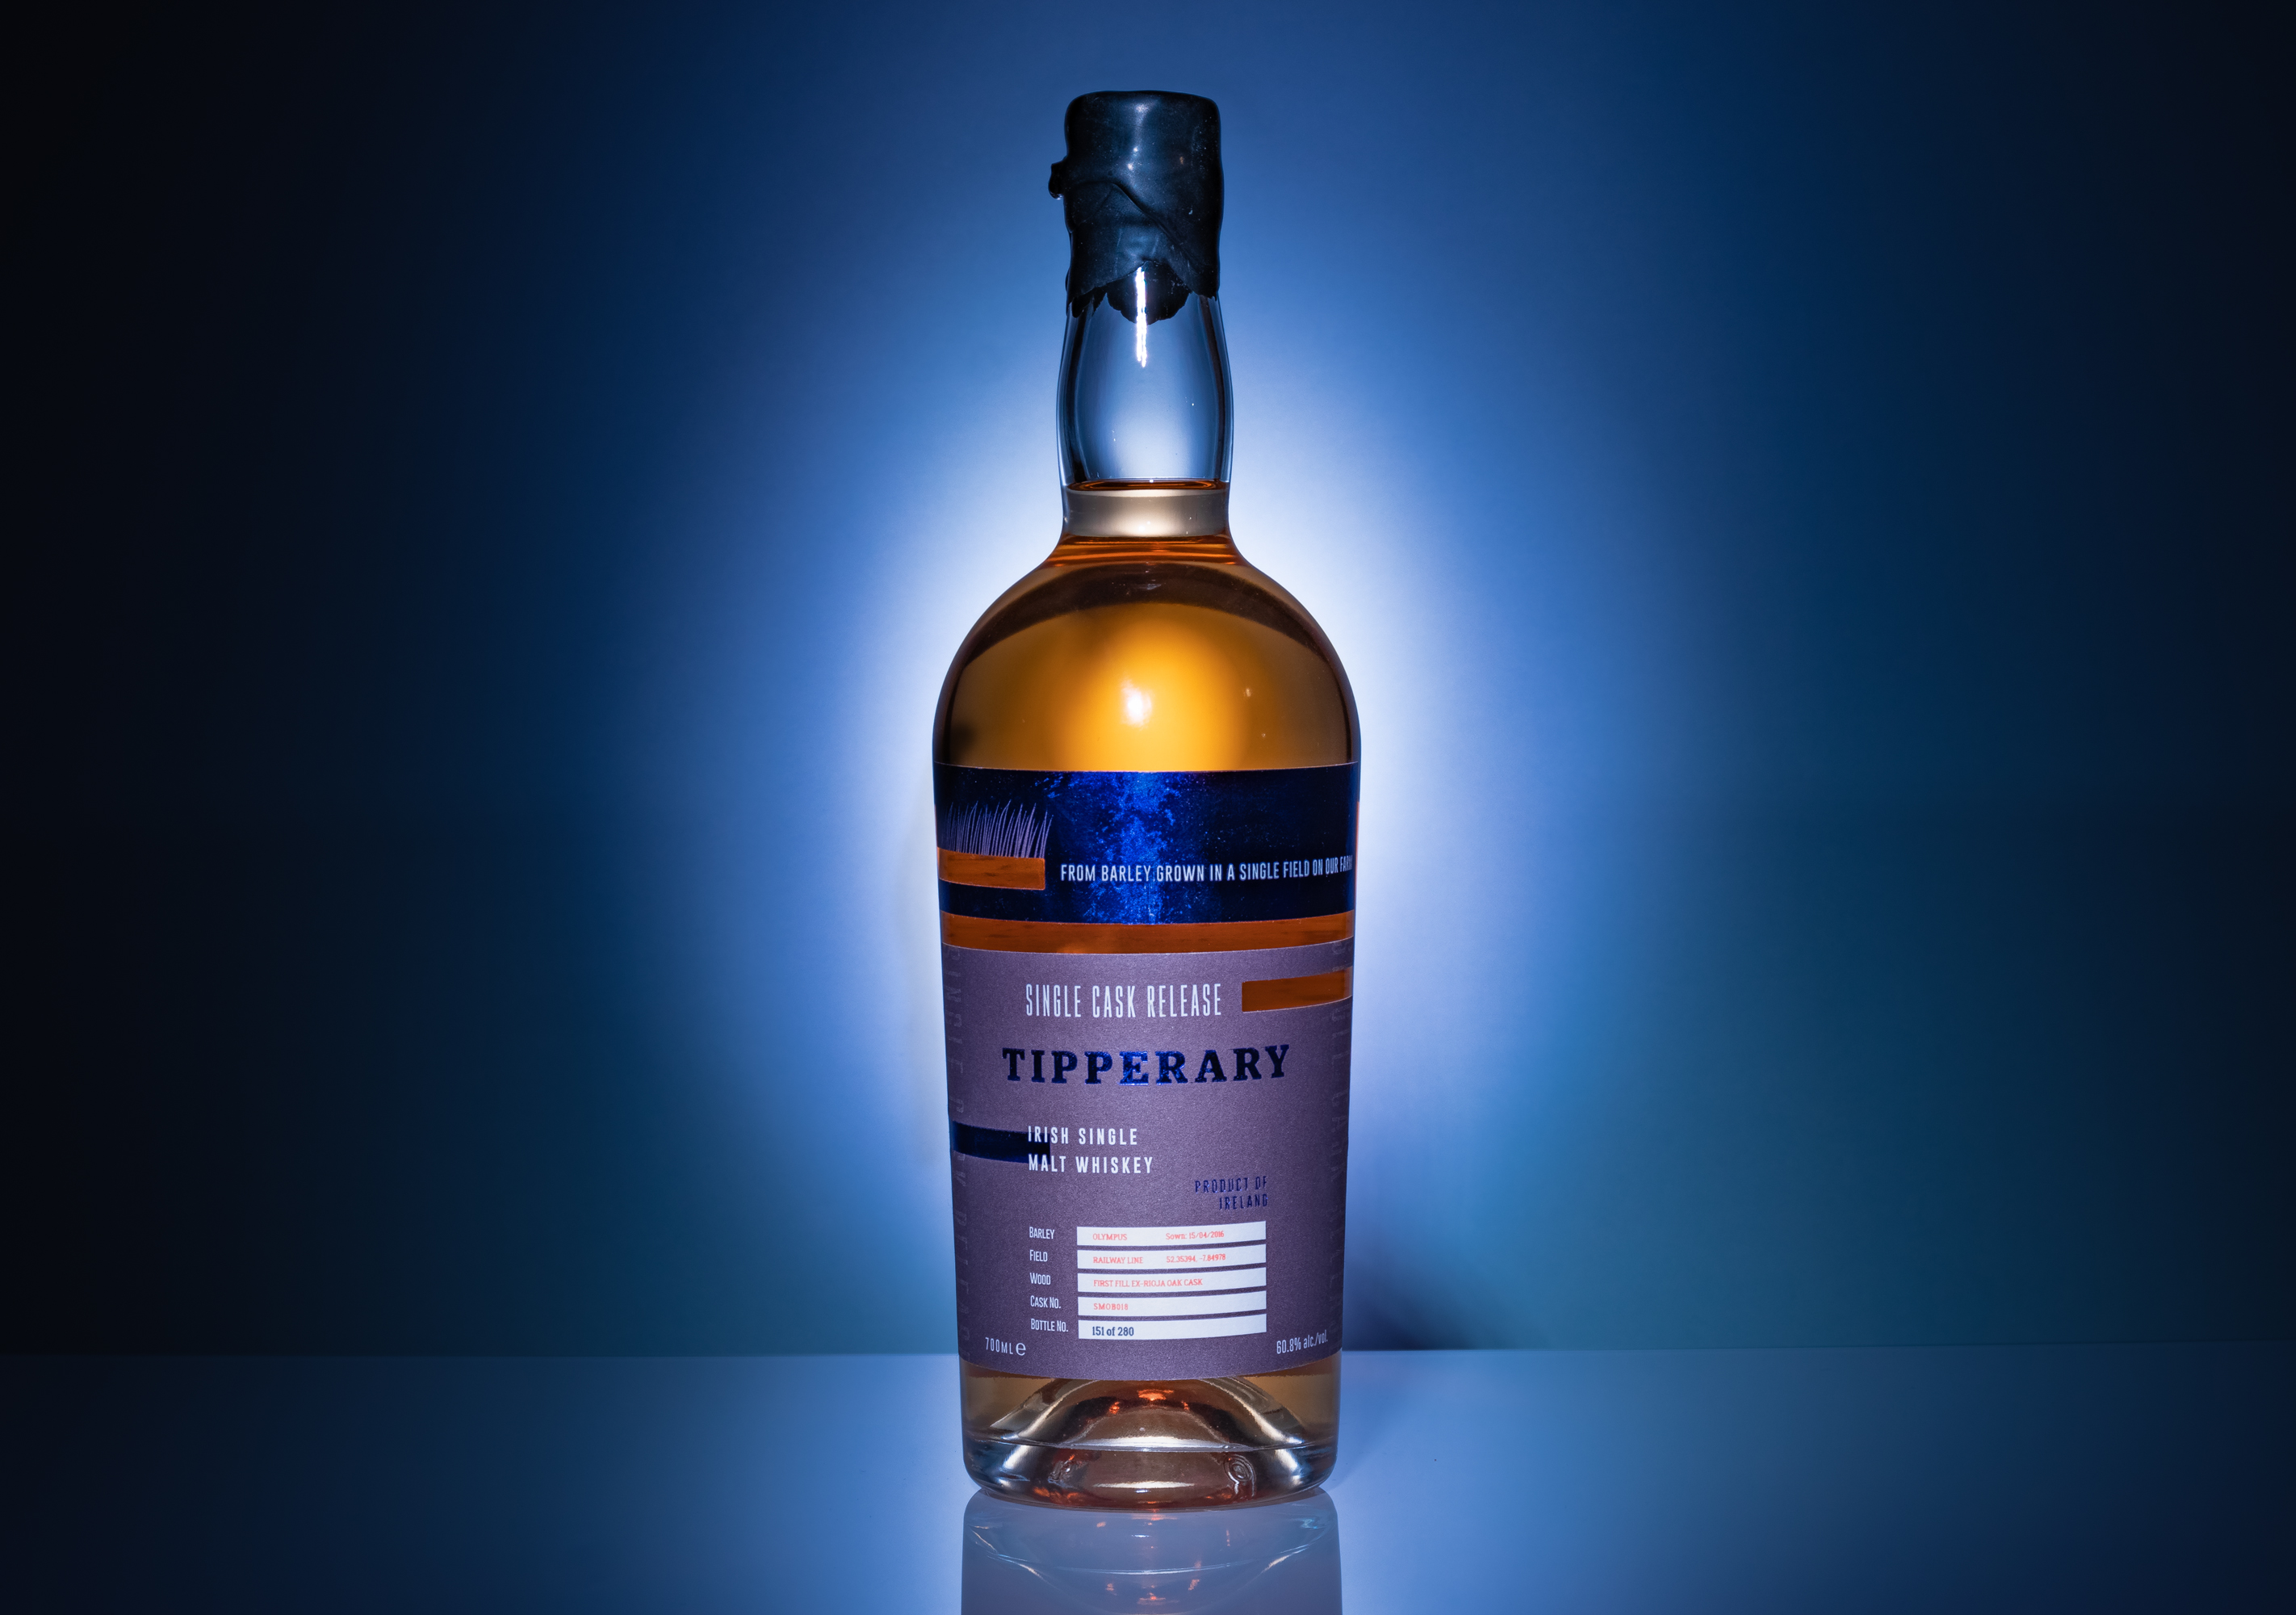 Cover image: Tipperary Boutique Distillery Whiskey Packaging